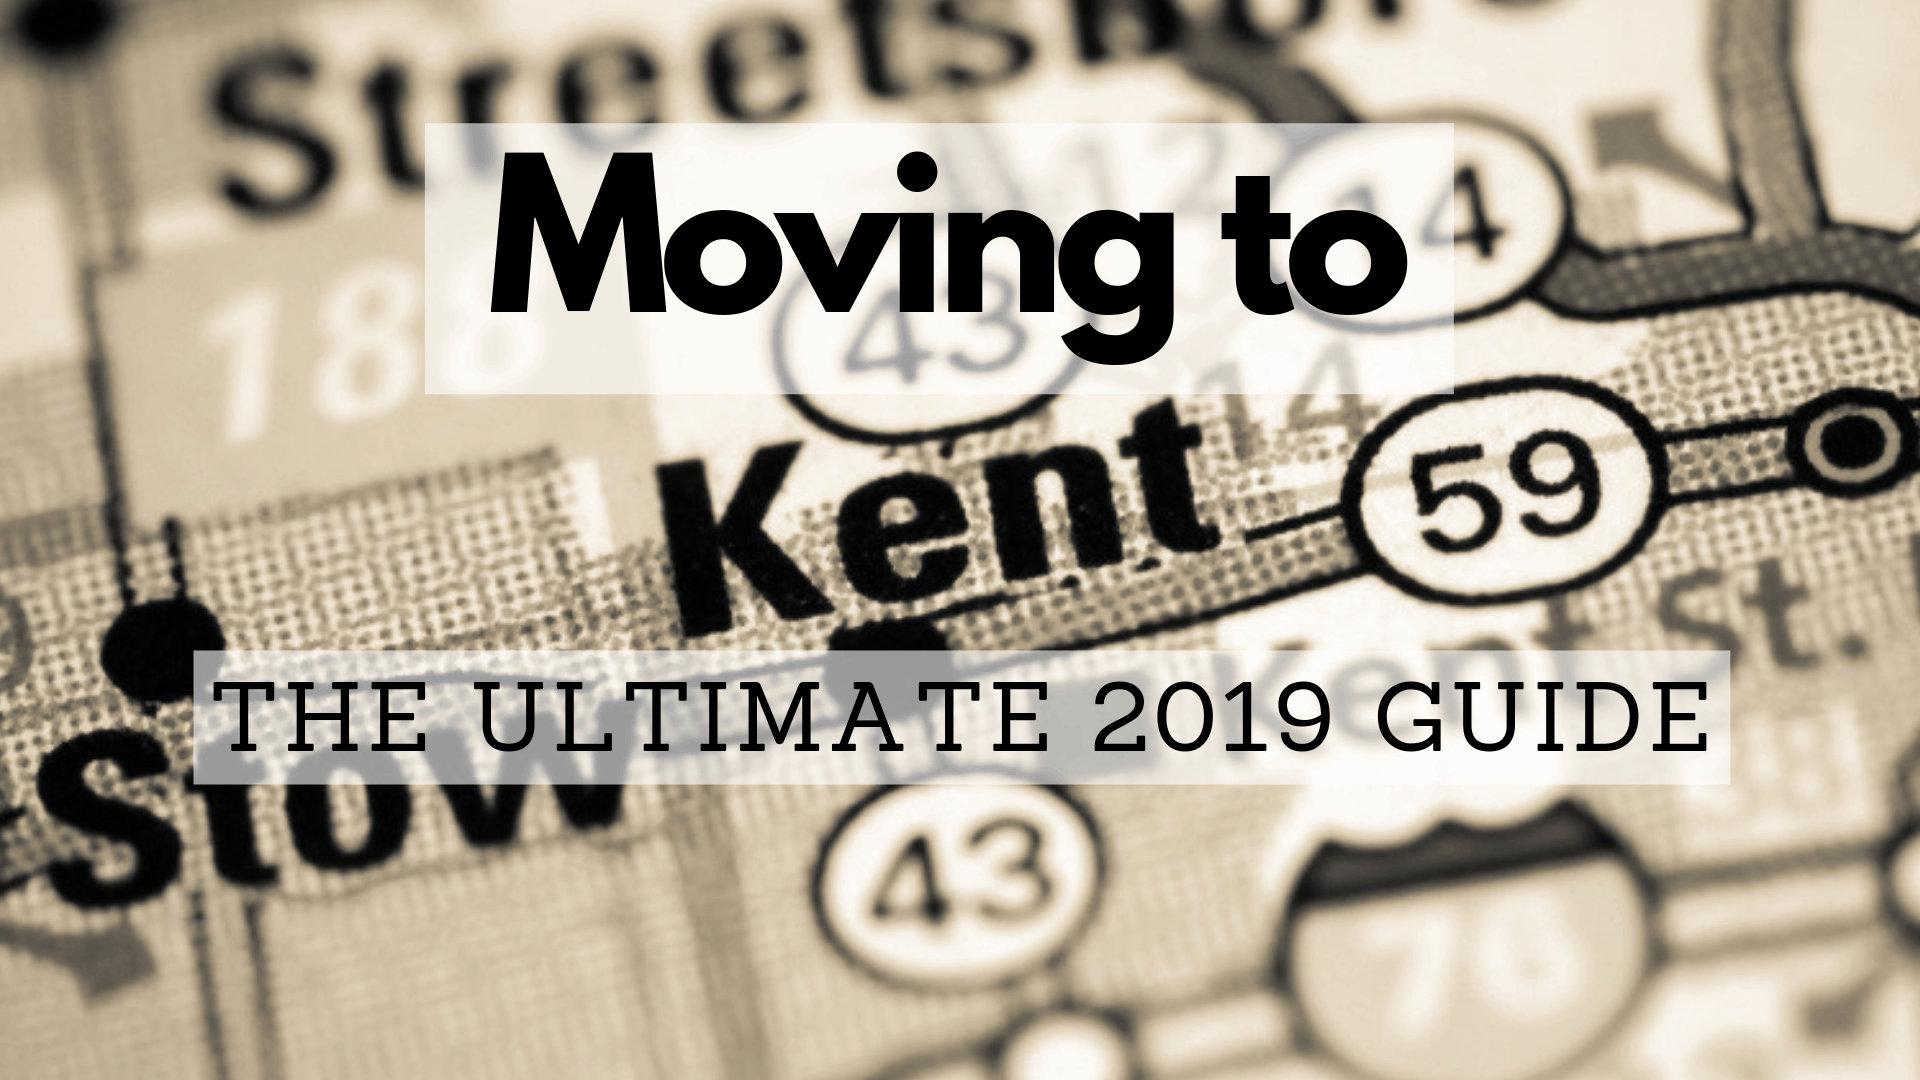 Moving to Kent - The Ultimate 2019 Guide